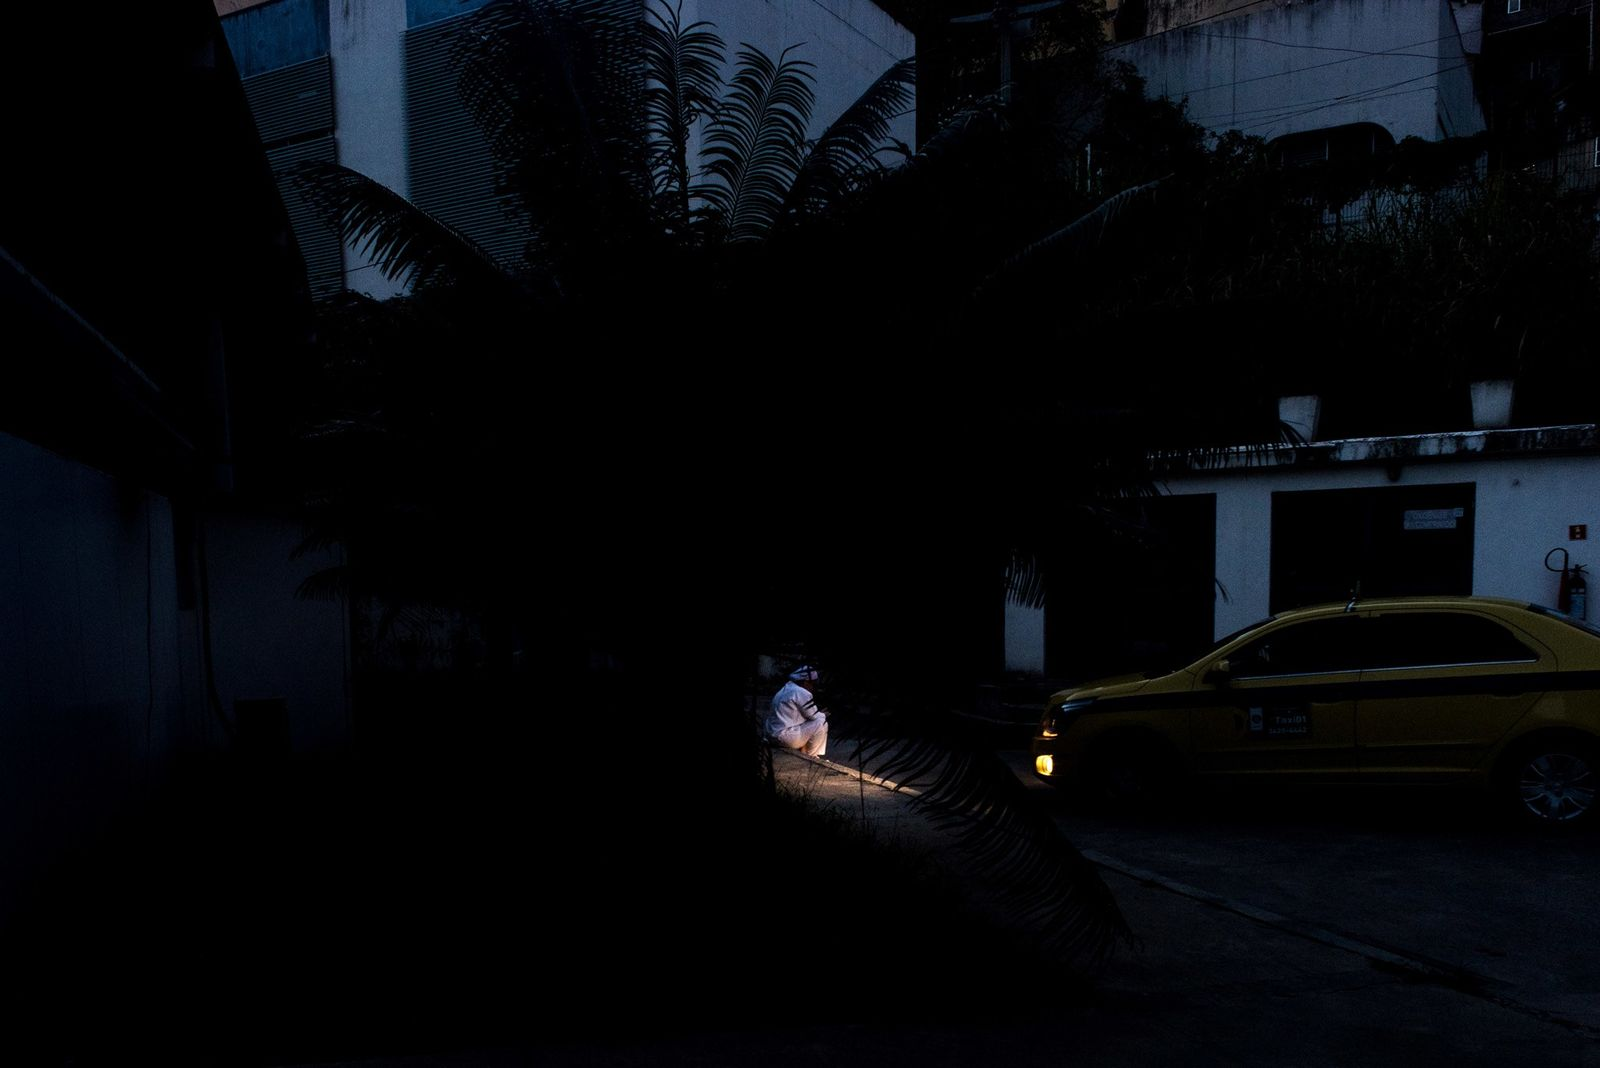 A healthcare worker taking a break is illuminated by the headlights of a taxi bringing a ...